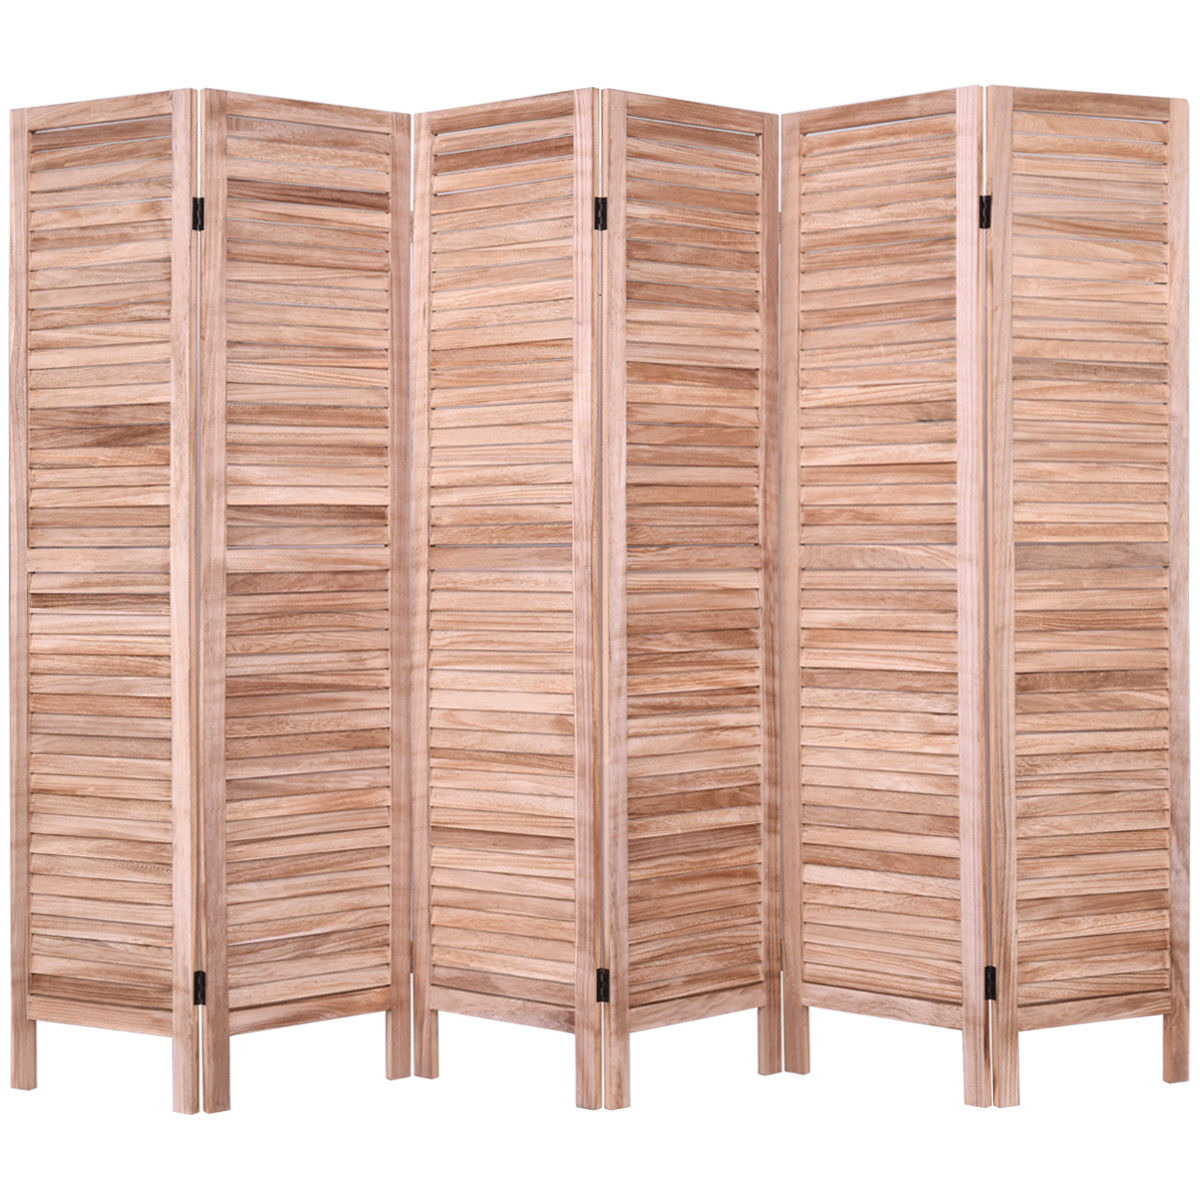 Costway 67'' High 6 Panel Room Divider Furniture Classic Venetian Wooden Slat Home